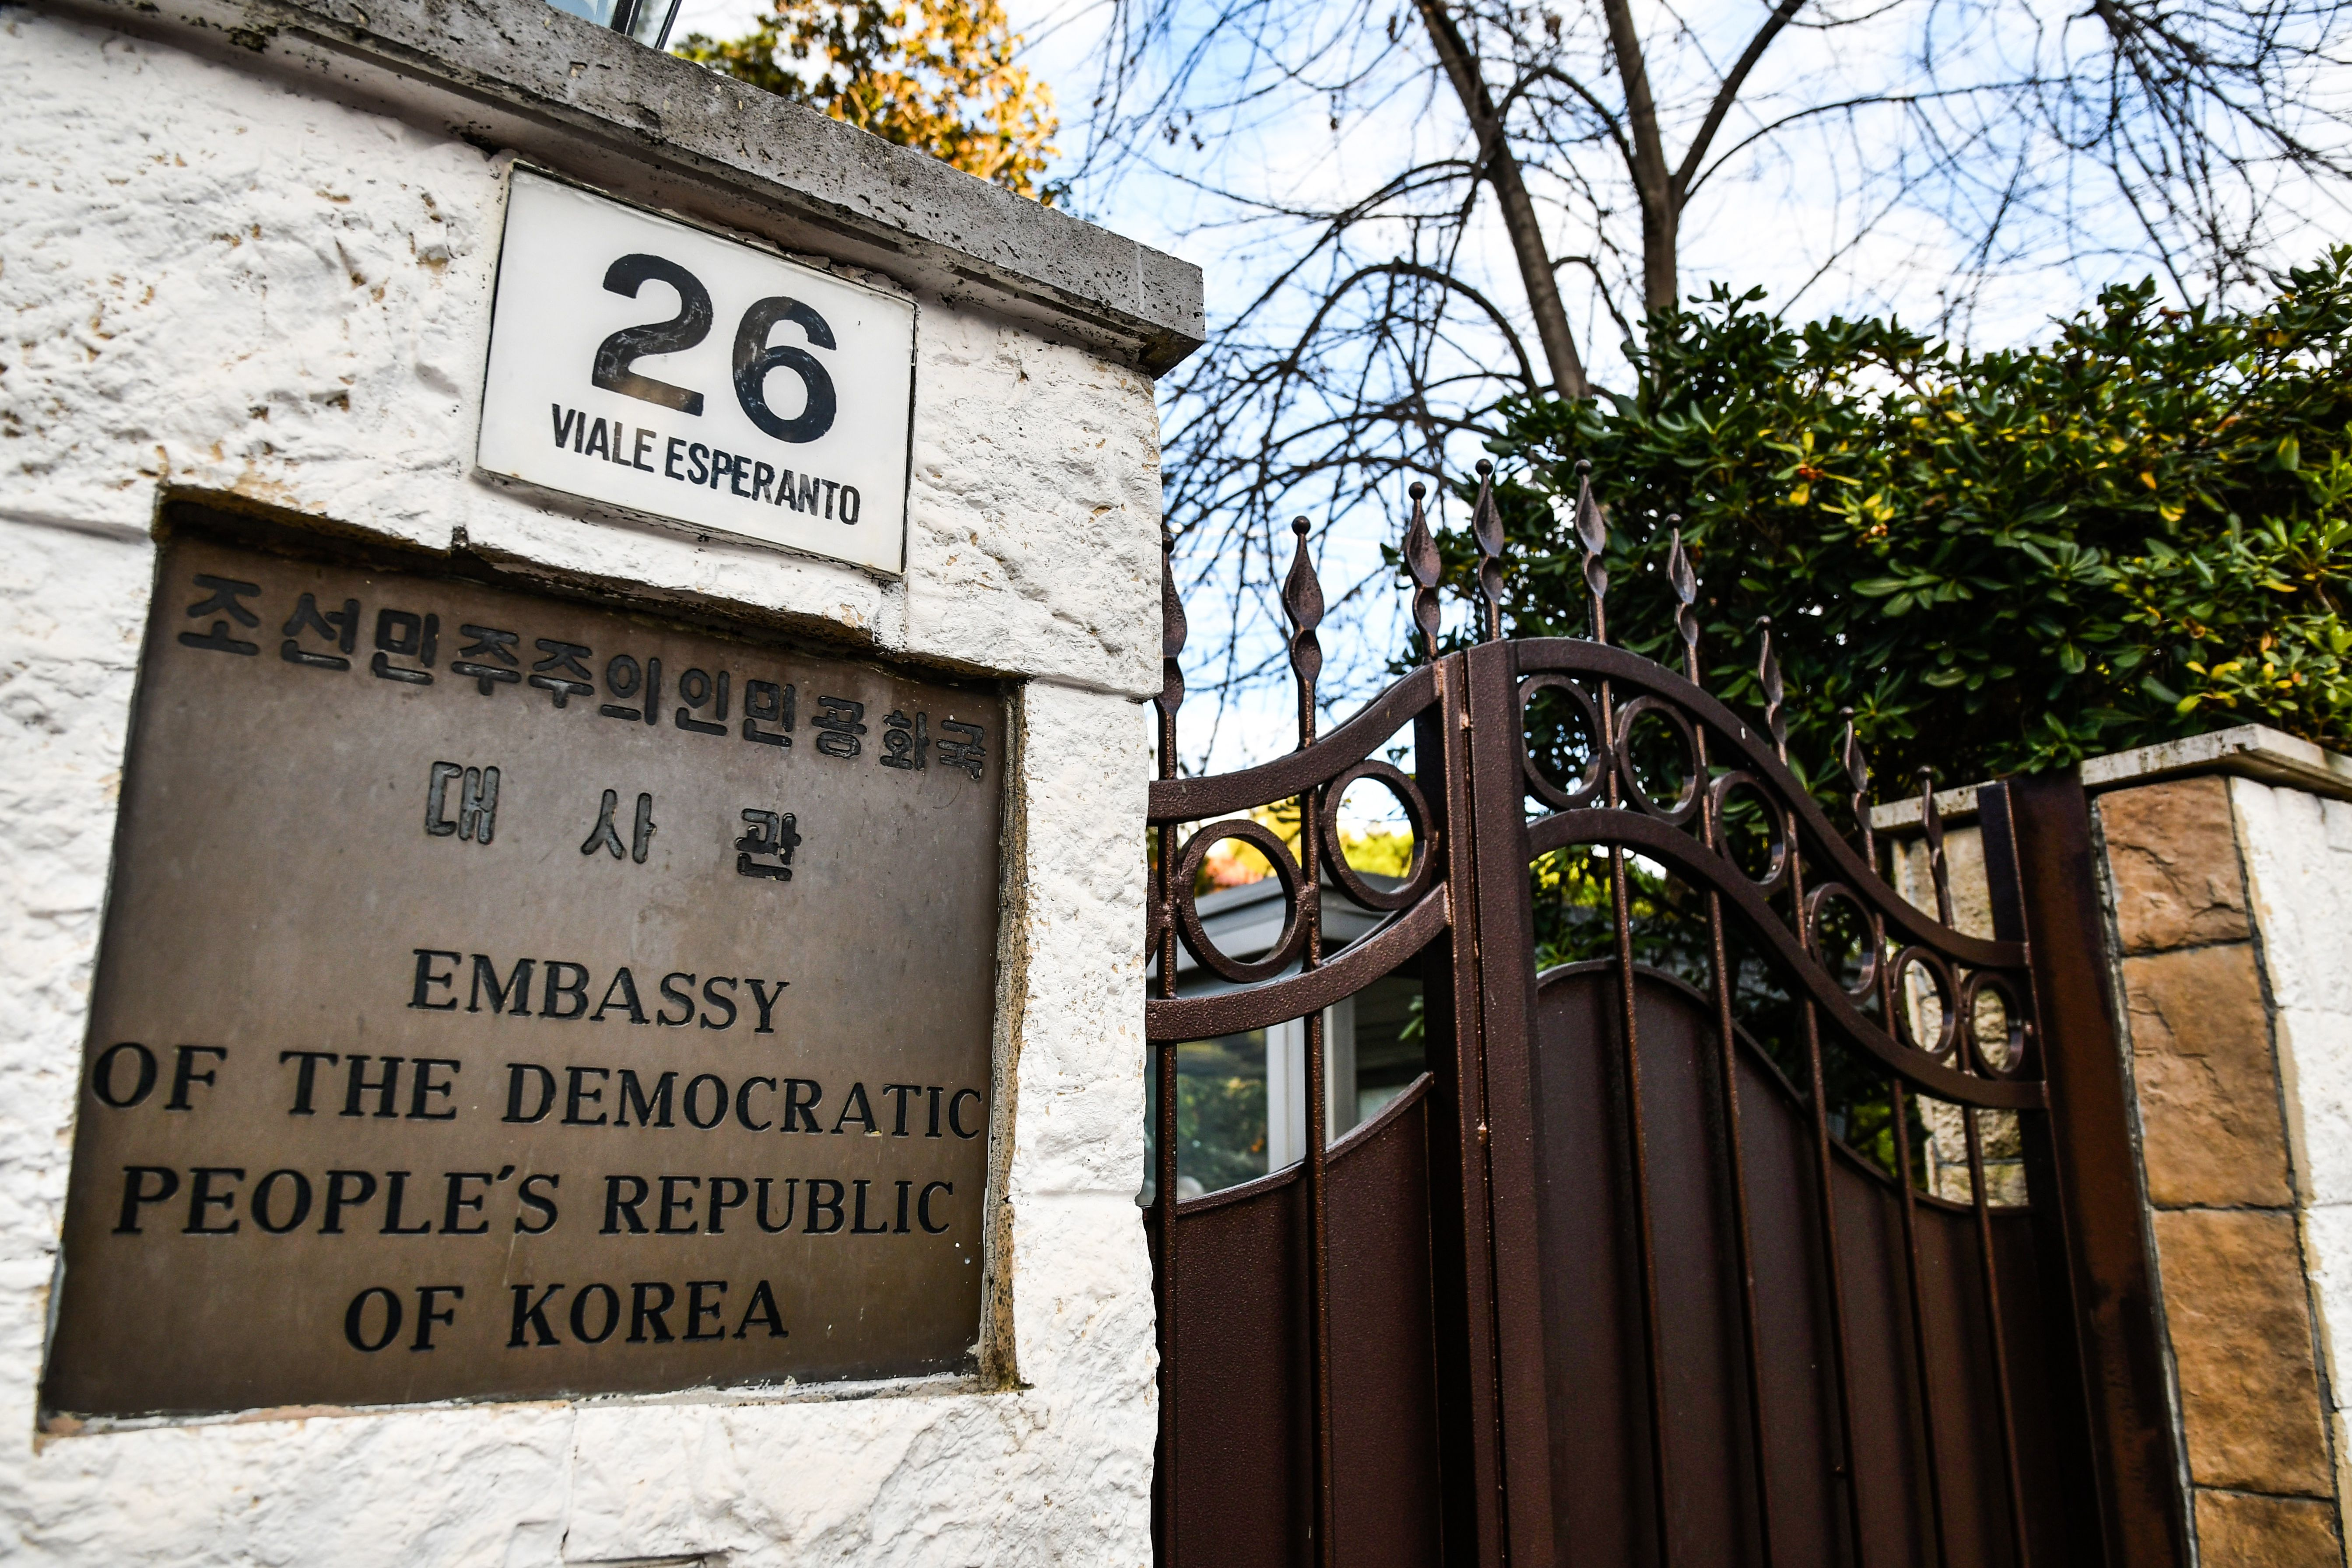 The entrance to North Korea's embassy in Italy is pictured on January 3, 2019 in Rome. - North Korea's top diplomat in Italy has sought asylum and gone into hiding, Seoul lawmakers told reporters after a closed-door meeting with South Korean intelligence officials on January 3. (Photo by Alberto PIZZOLI / AFP)